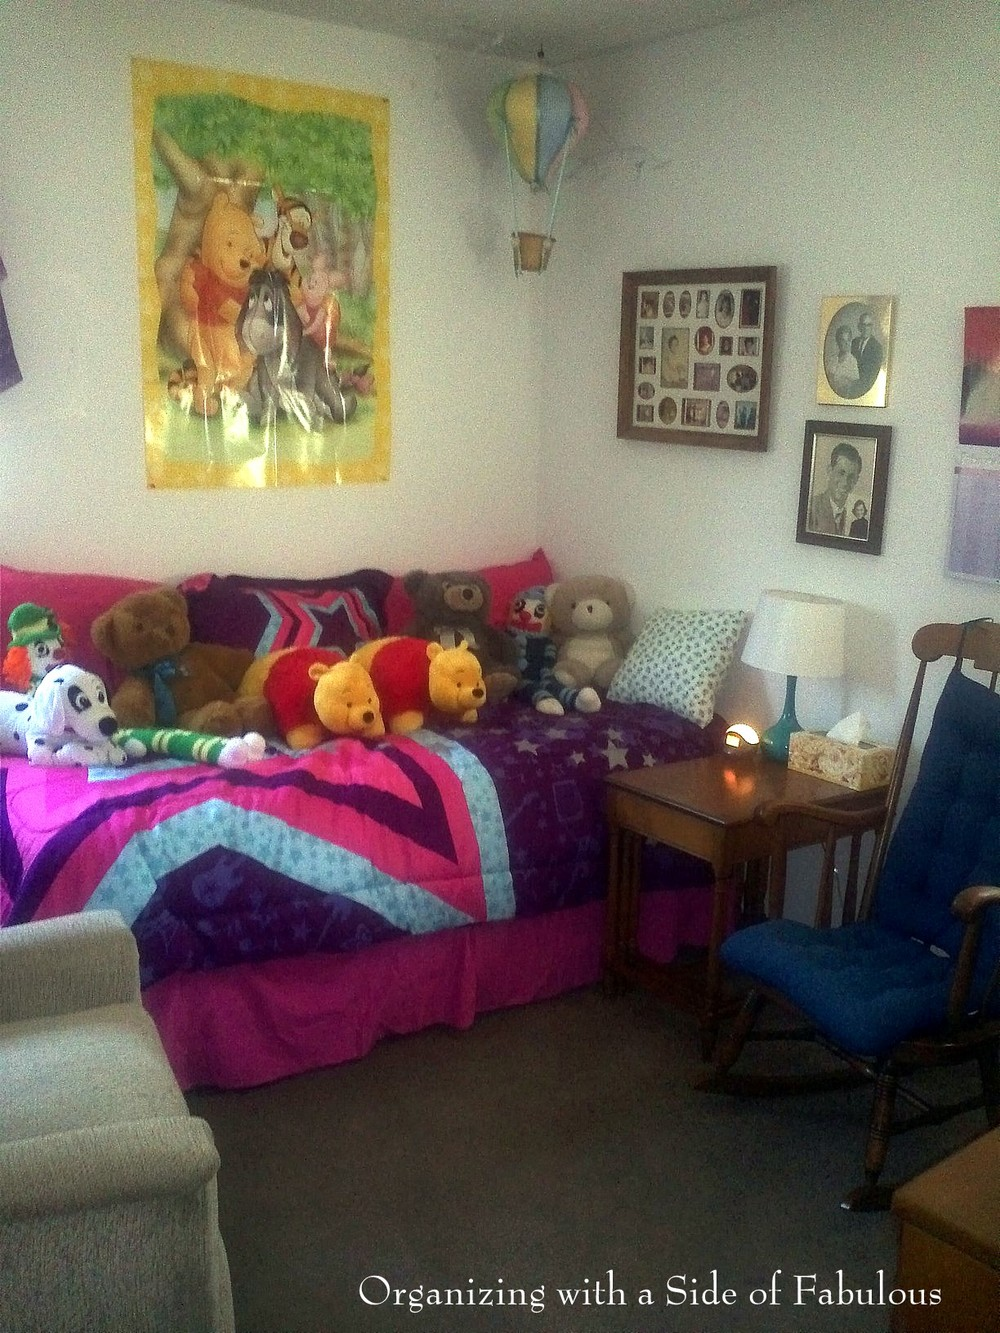 Makeover: Becoming the Happy Room - Organizing with a Side of Fabulous Blog